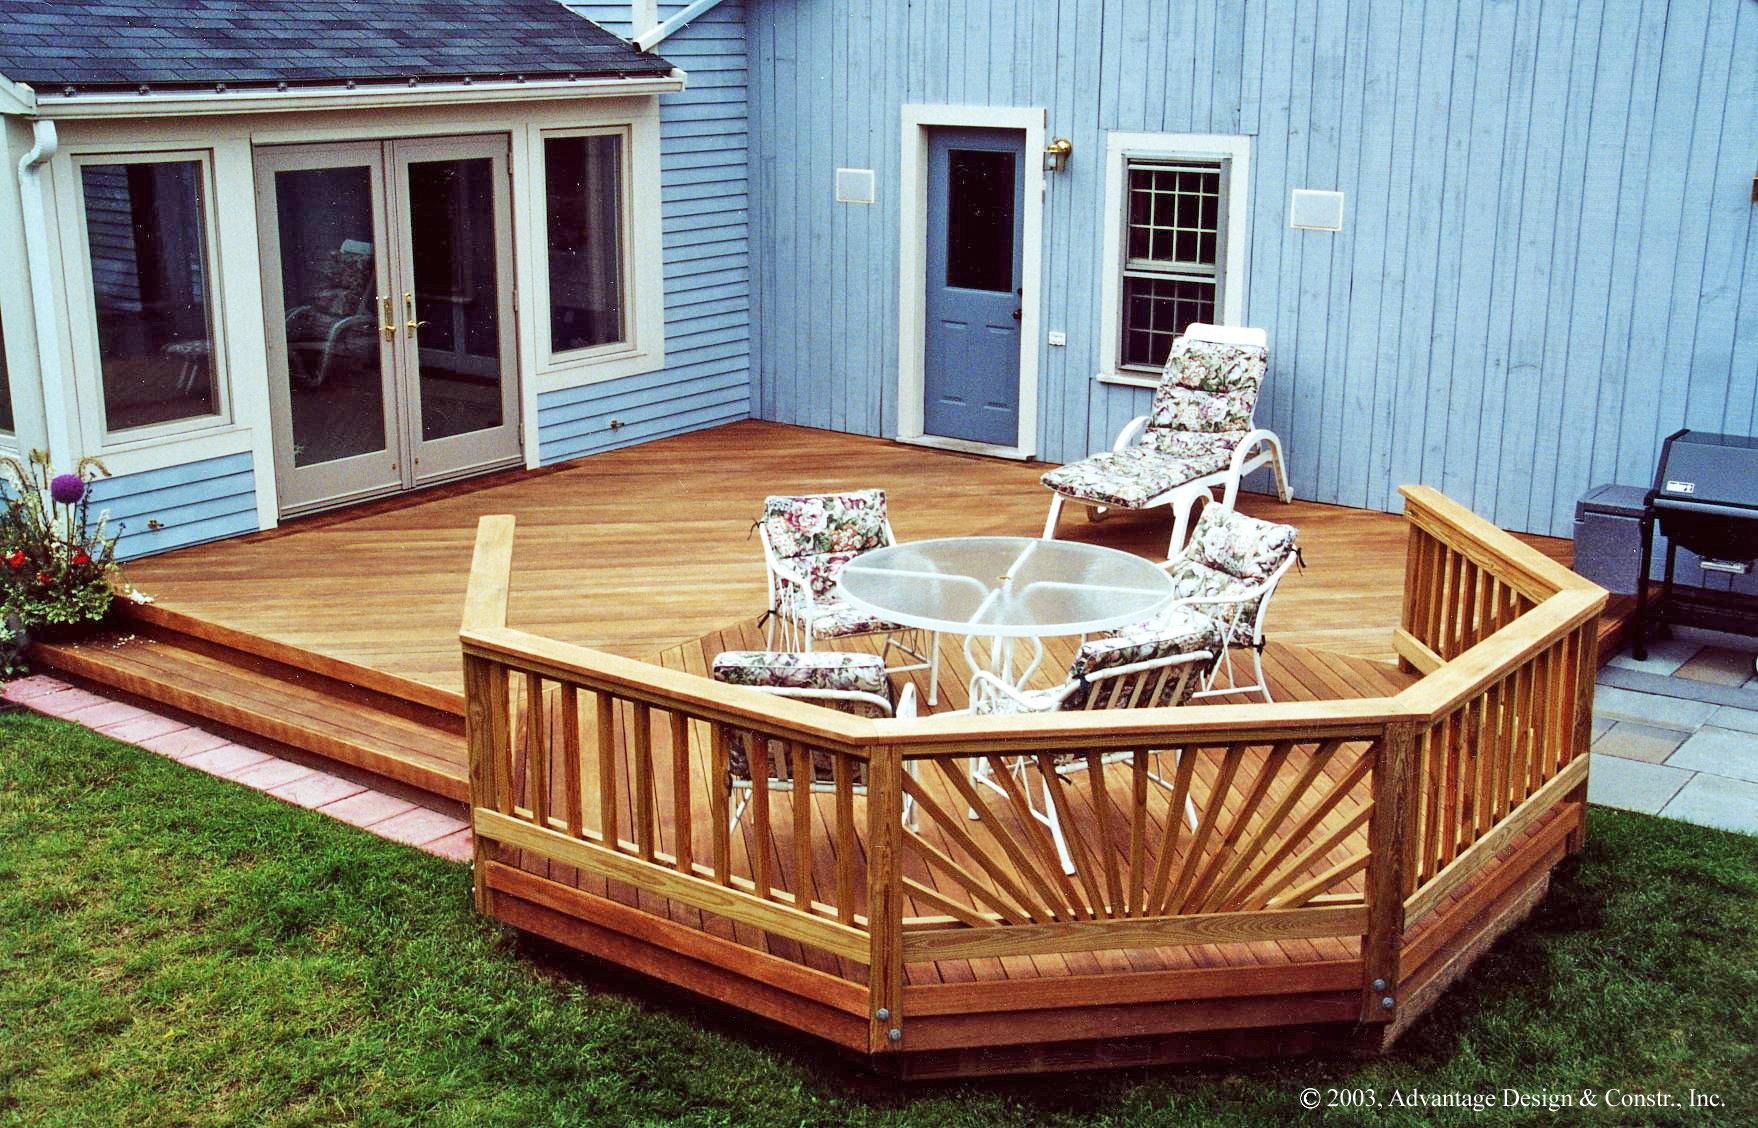 Choosing a Deck or a Patio – Suburban Boston Decks and Porches blog